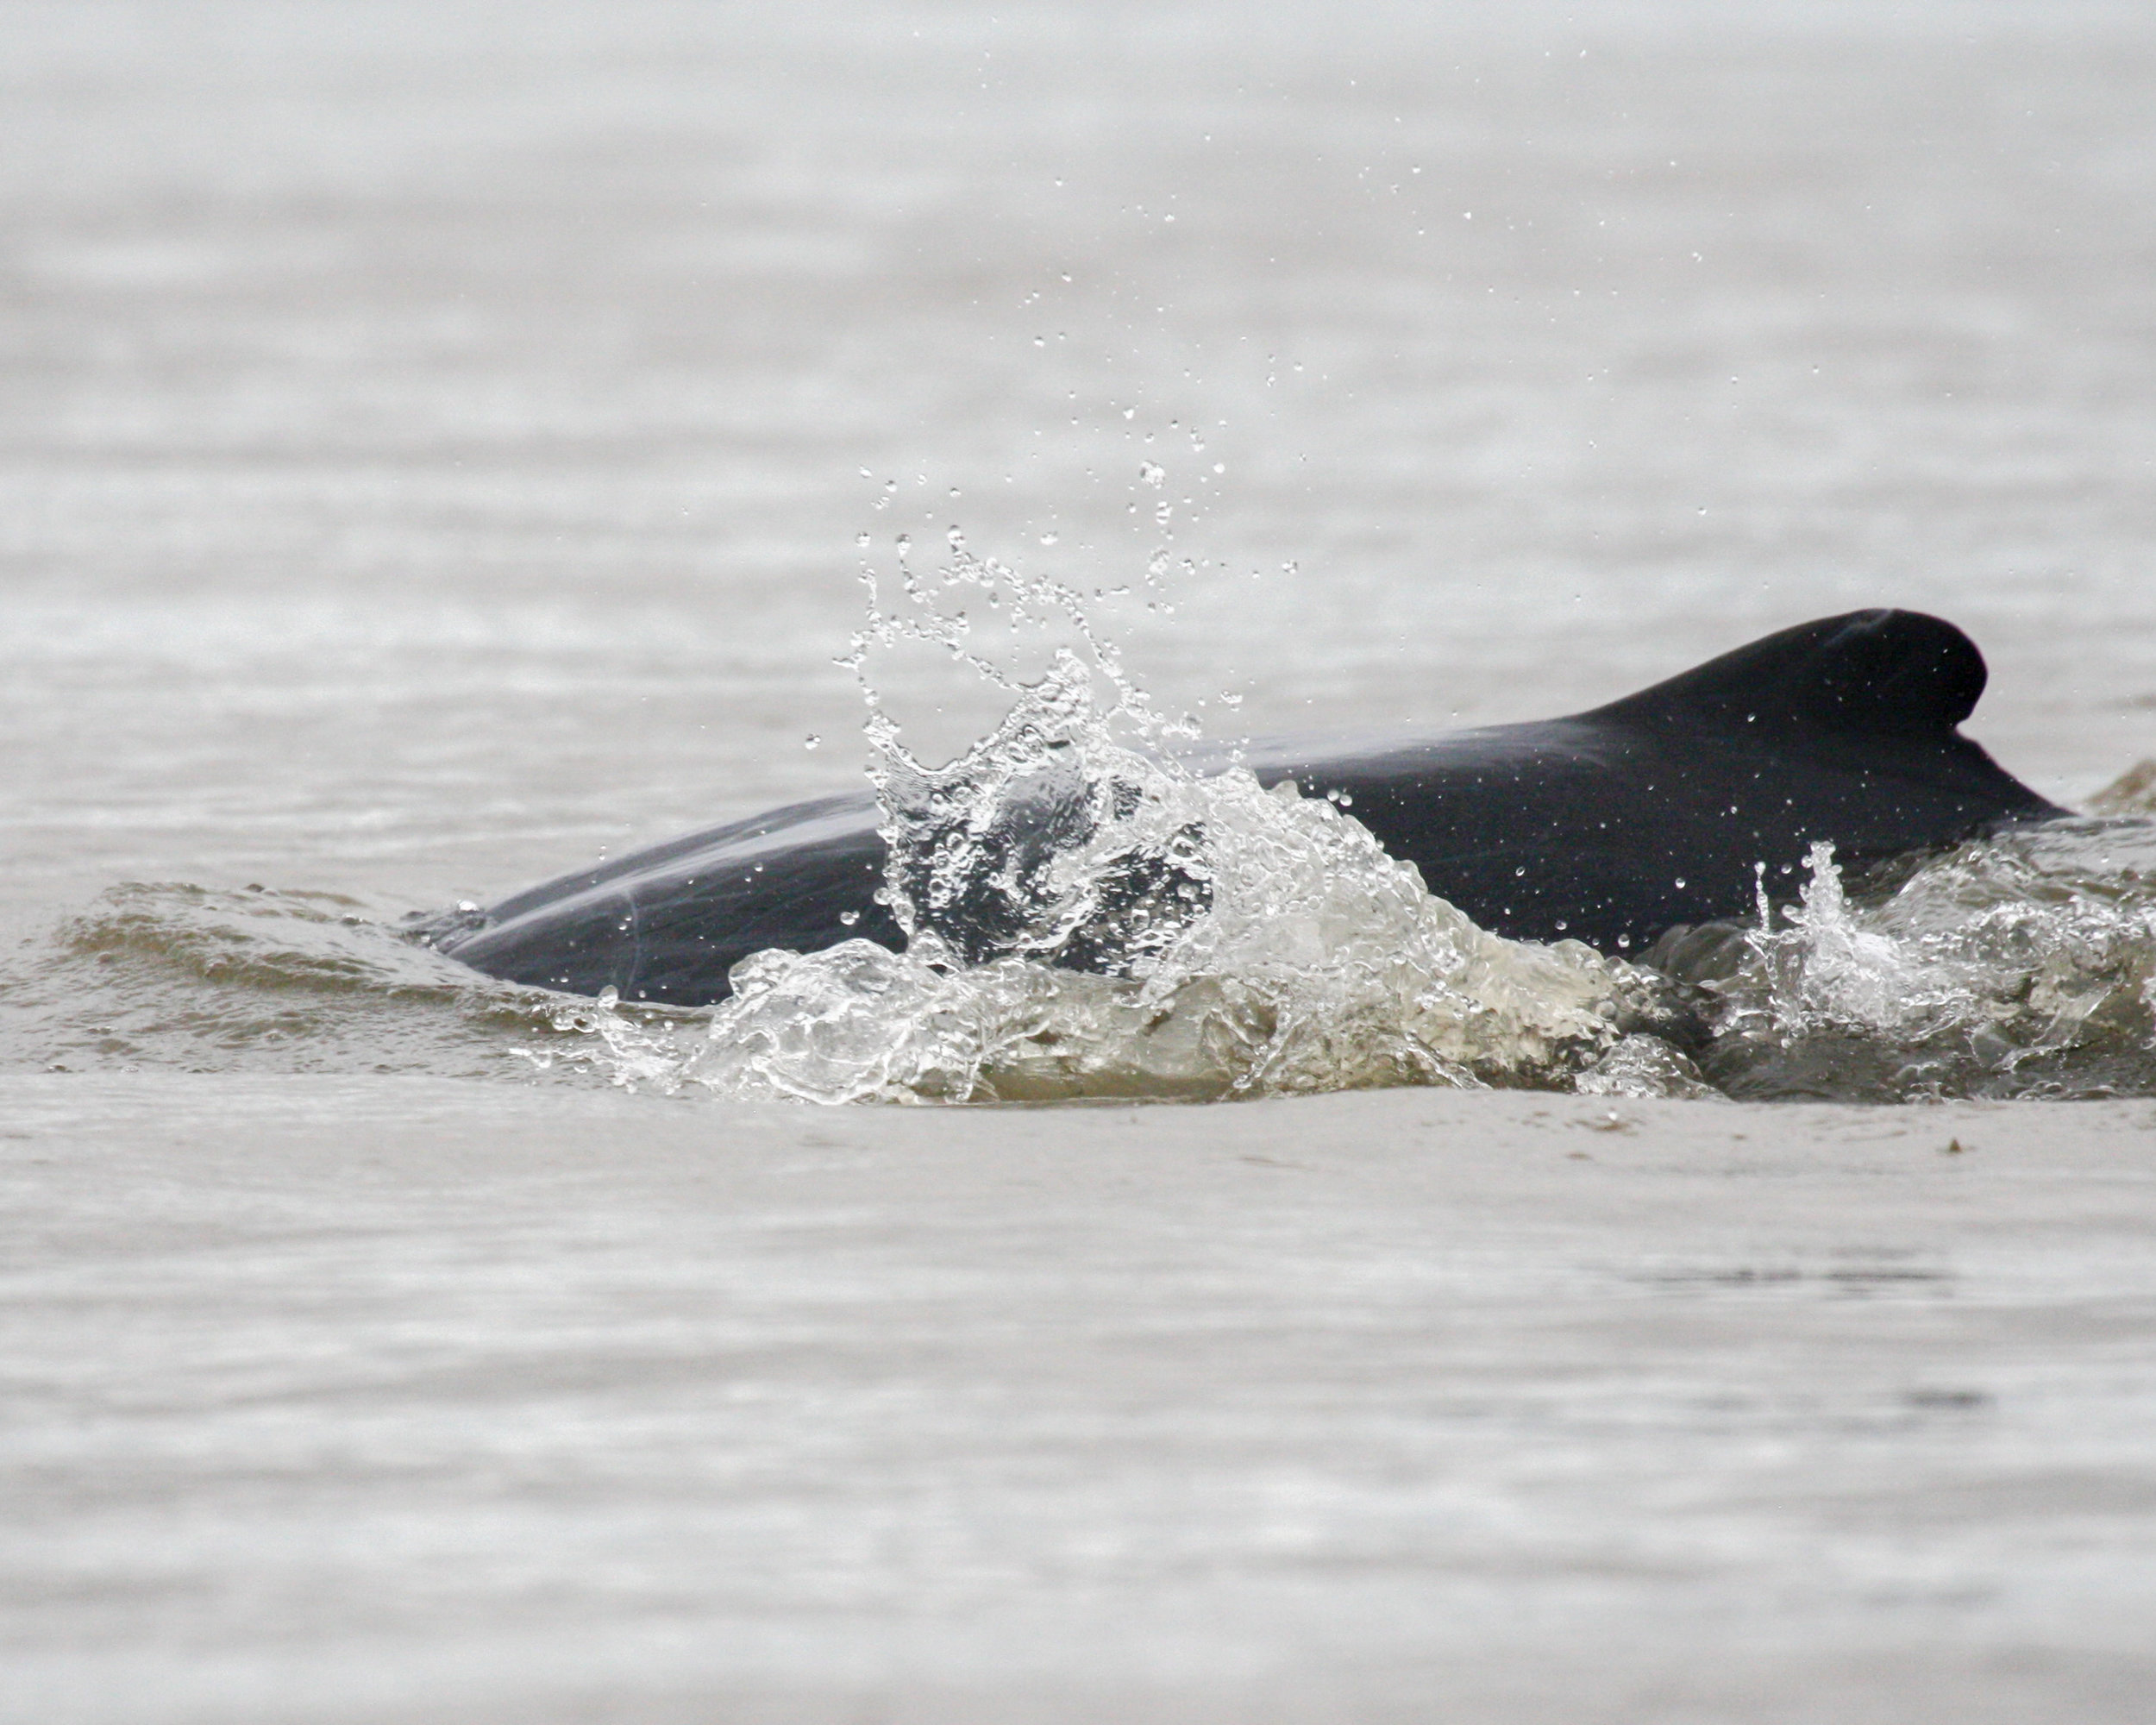 Cambodia Itinerary: Irrawaddy River Dolphins